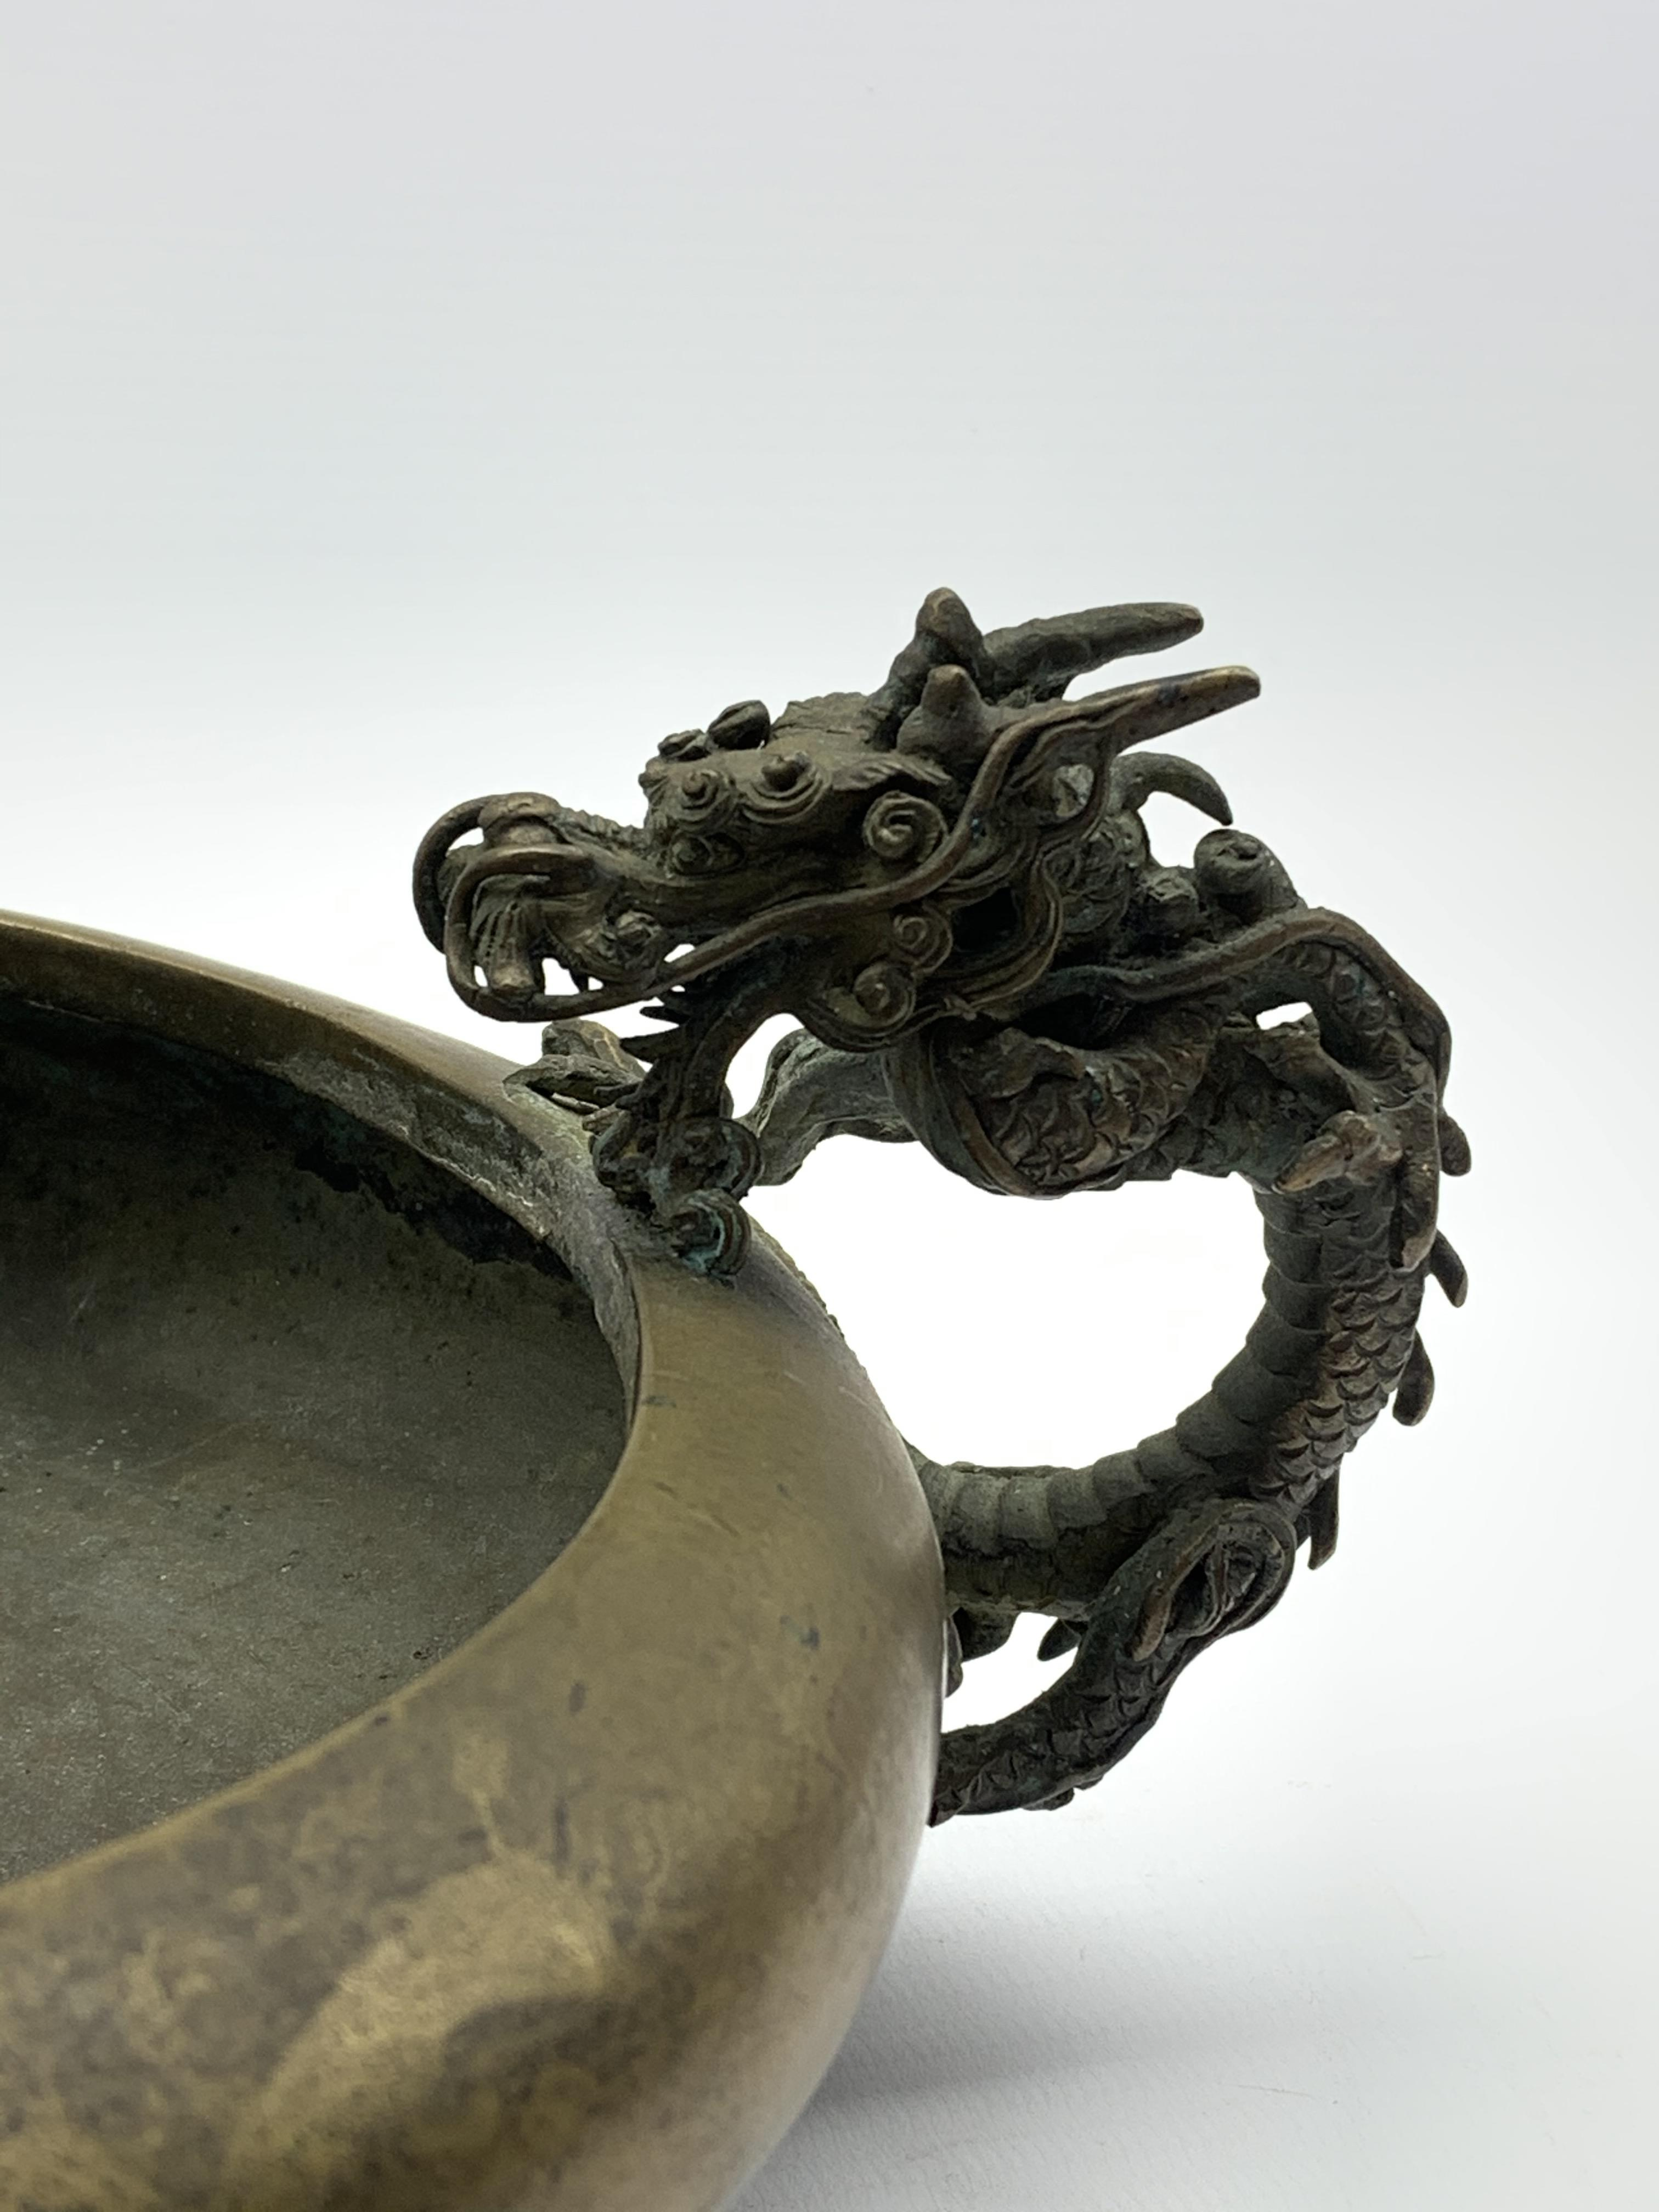 19th century Japanese bronze censer, compressed body with inverted rim flanked by a pair of bronze - Image 2 of 5